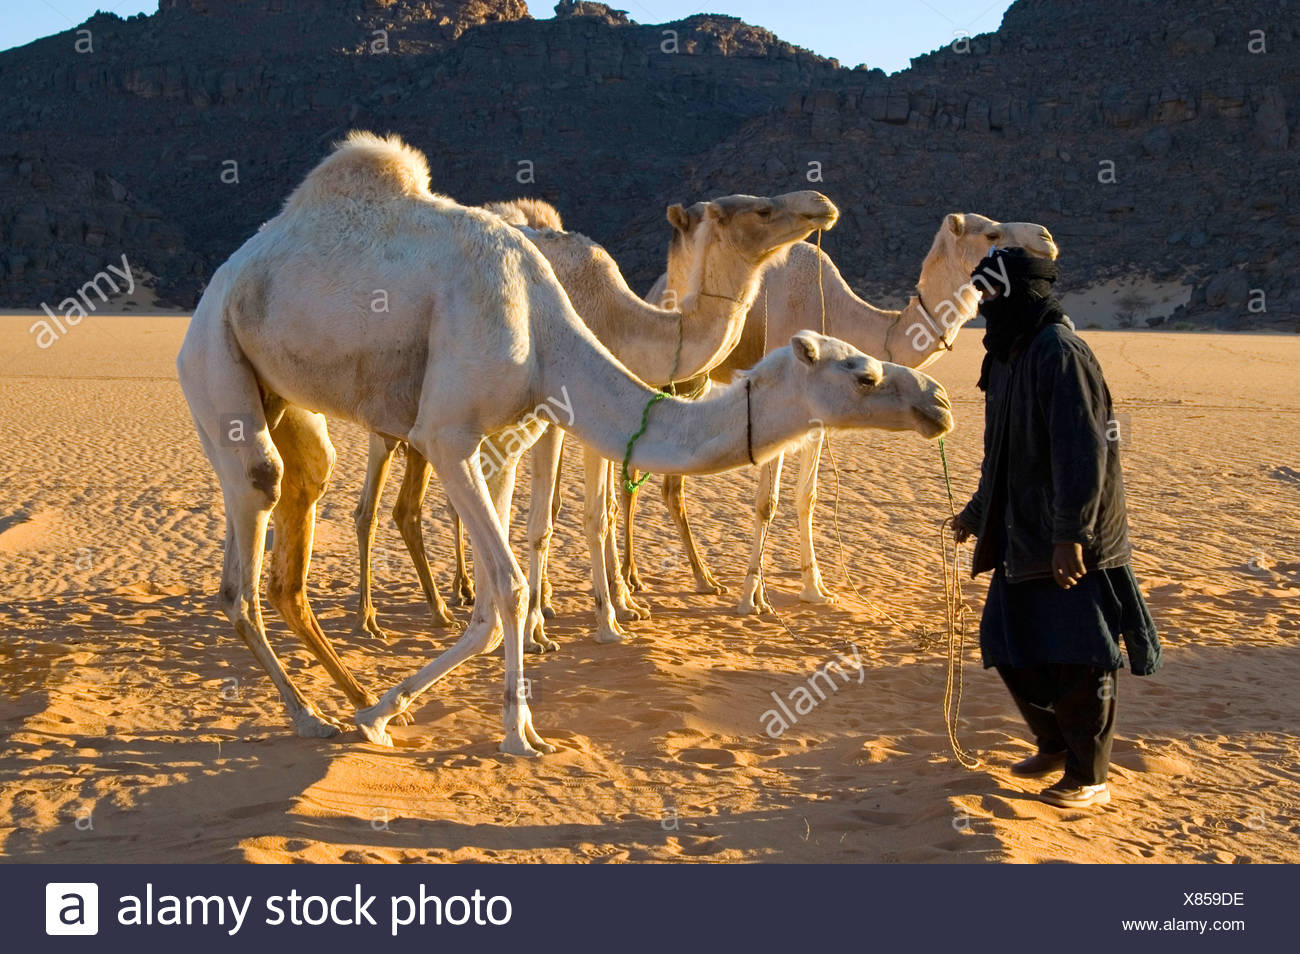 White Camels Stock Photos Amp White Camels Stock Images Alamy